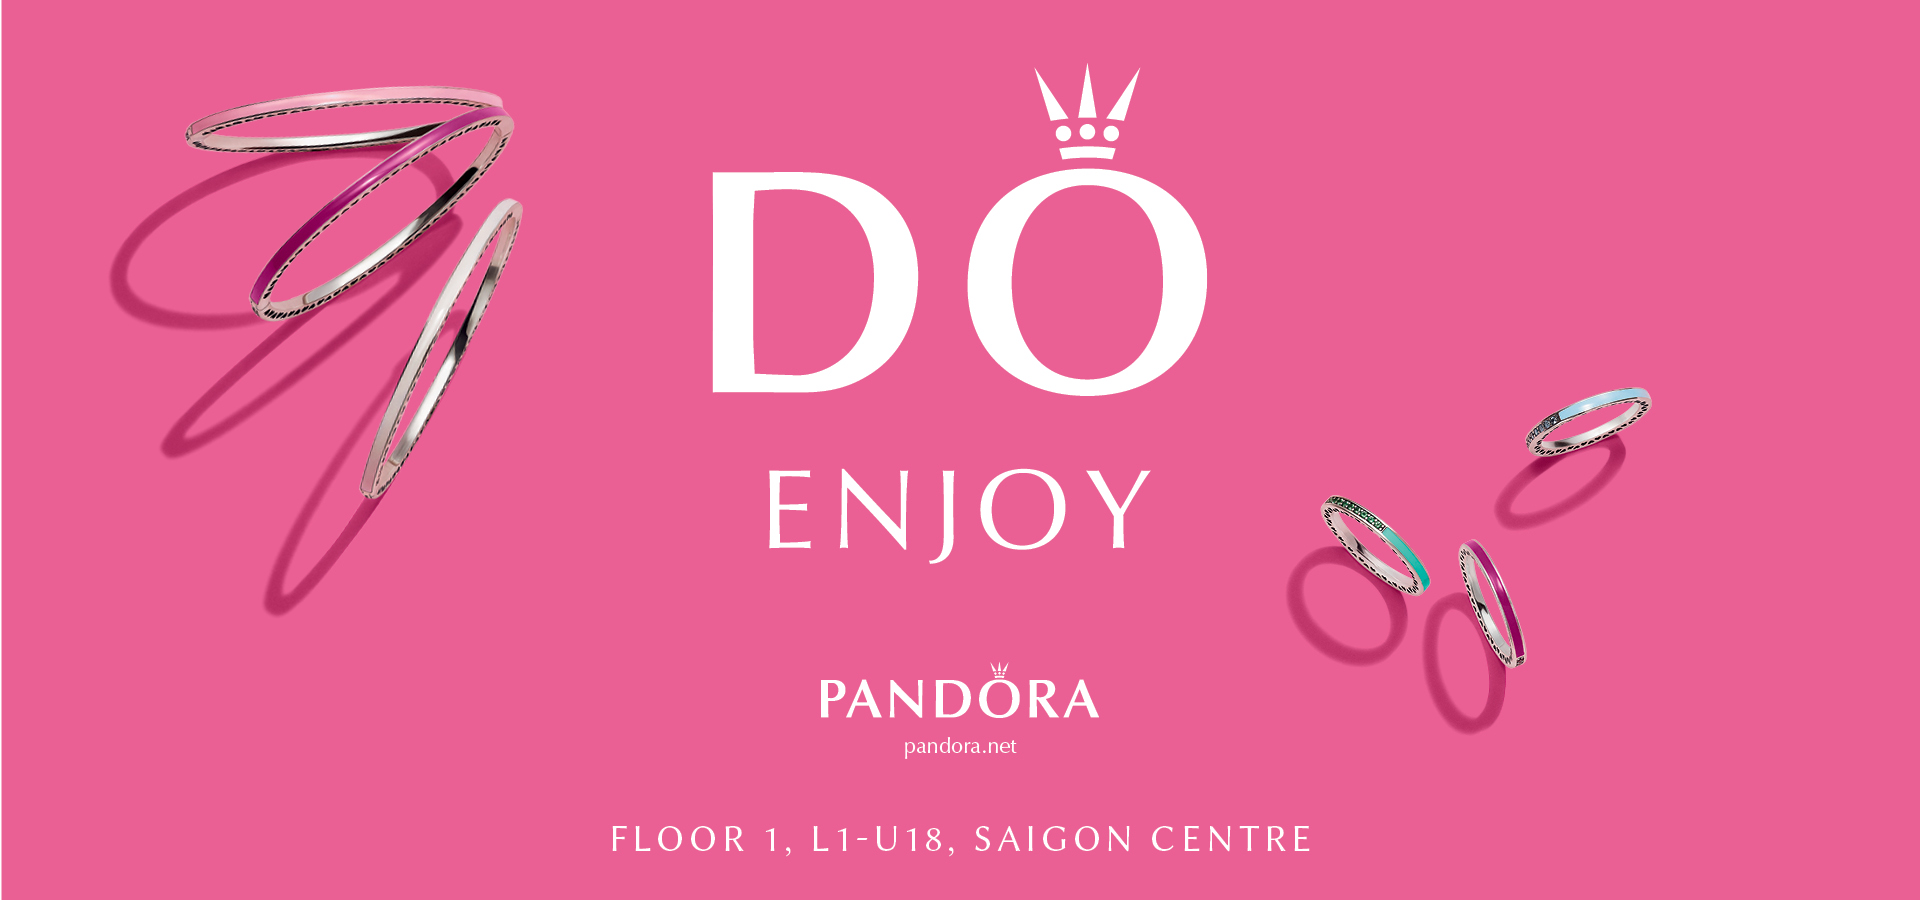 PANDORA – DO Join and Enjoy